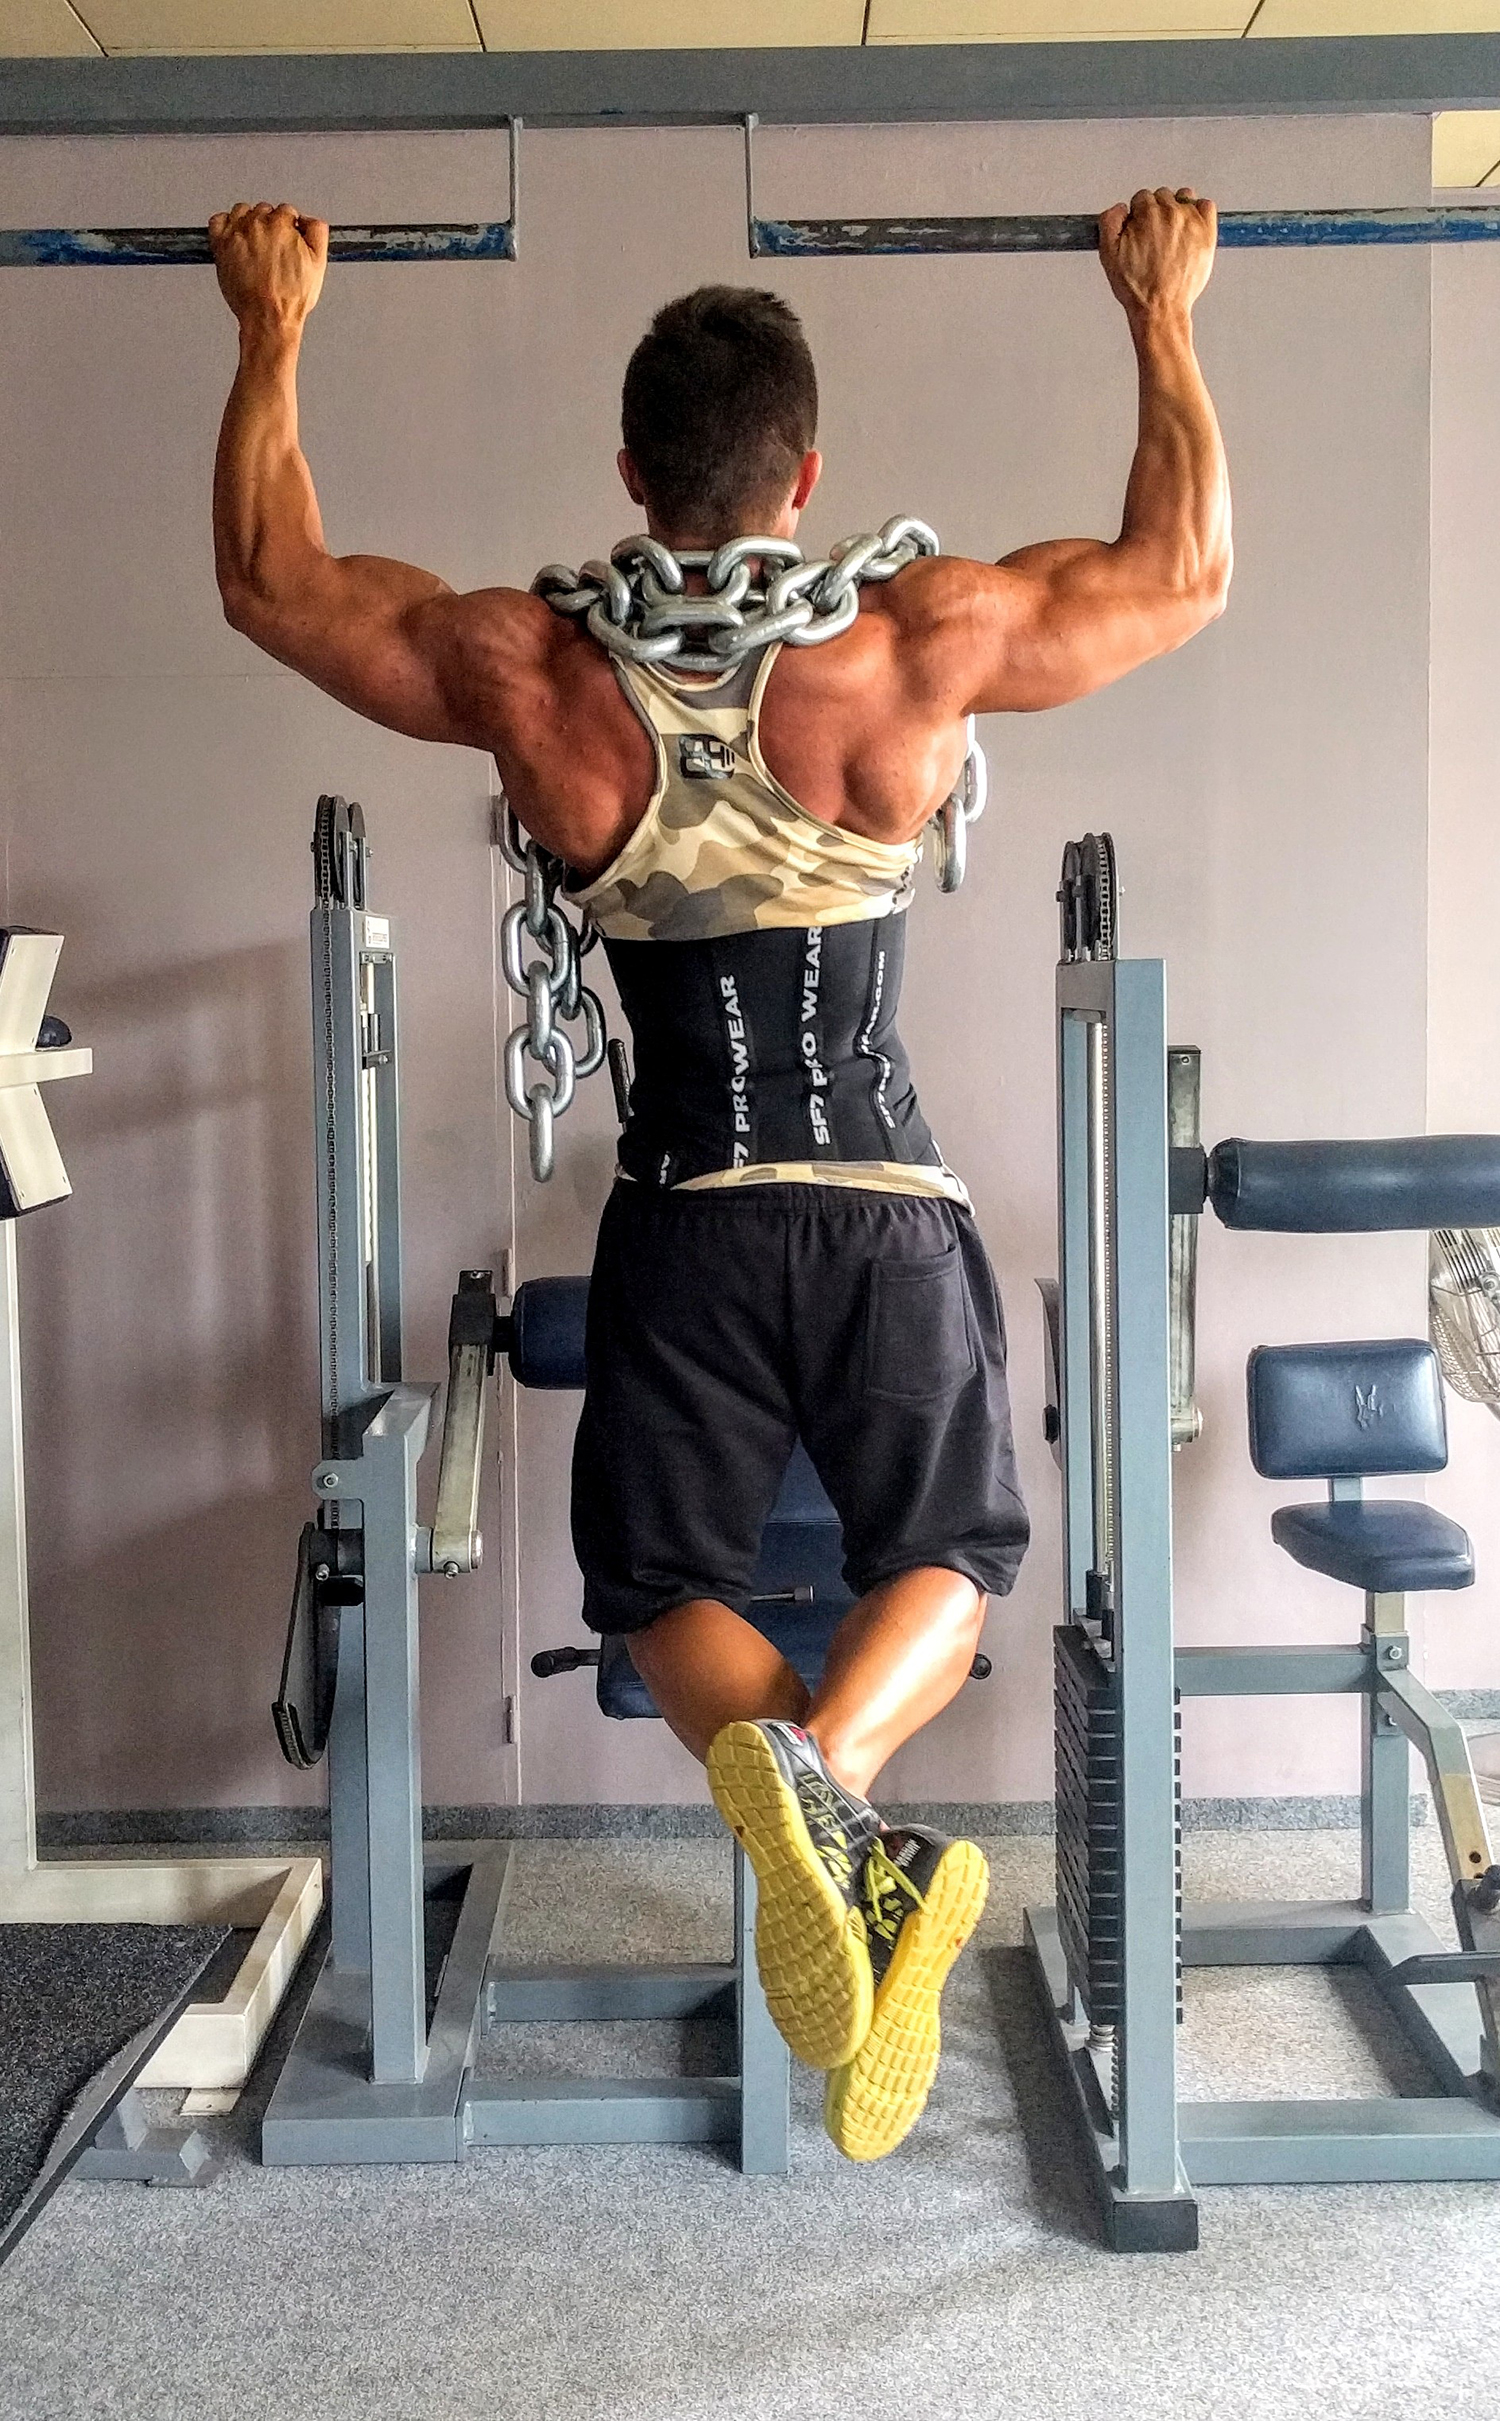 Muscular Man Doing Weighted Pull Ups Exercise - High ...